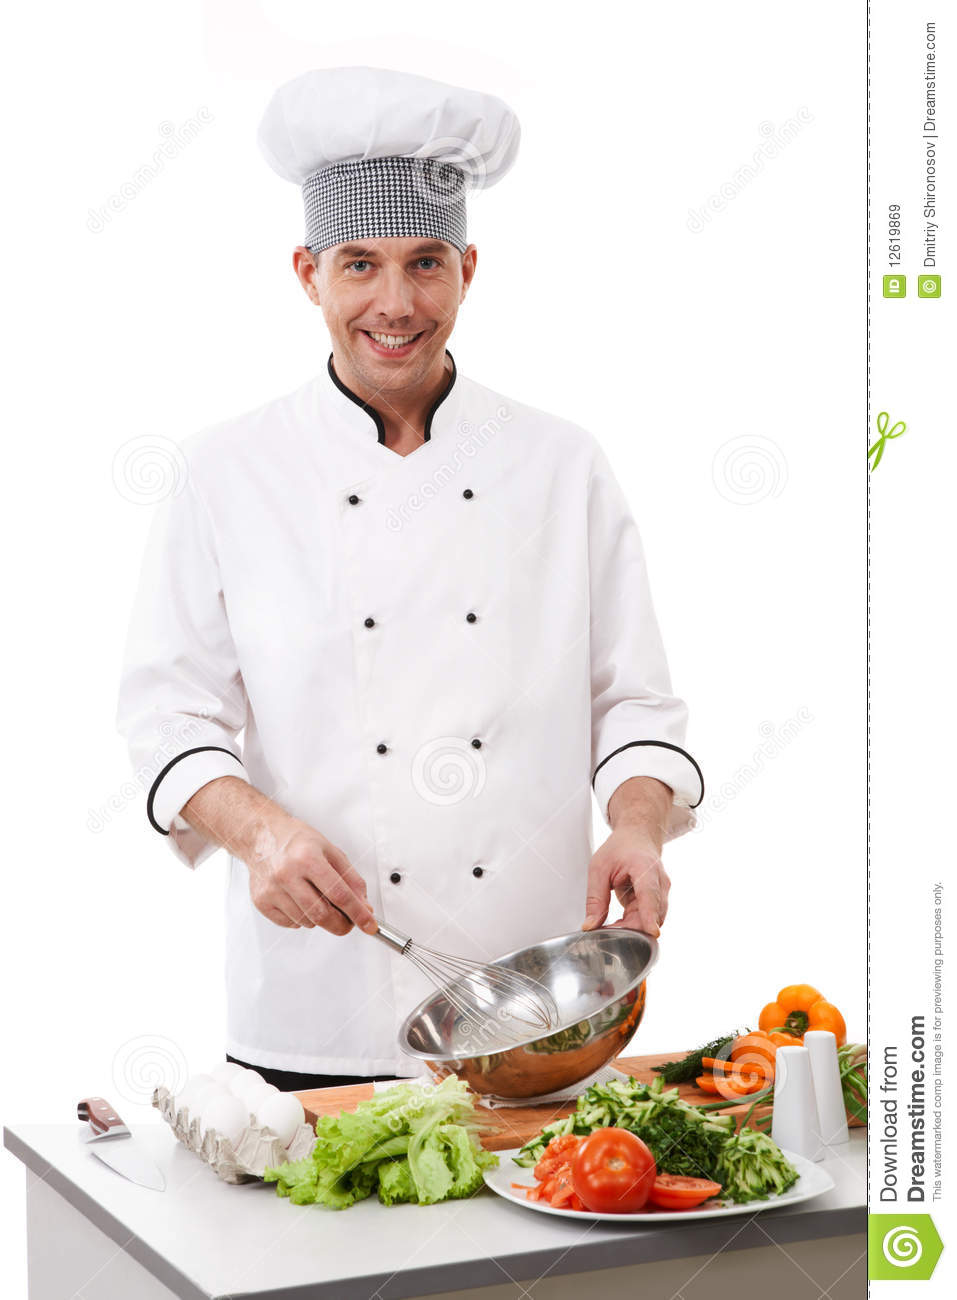 Http Www Dreamstime Com Royalty Free Stock Images Cooking Chef Image12619869